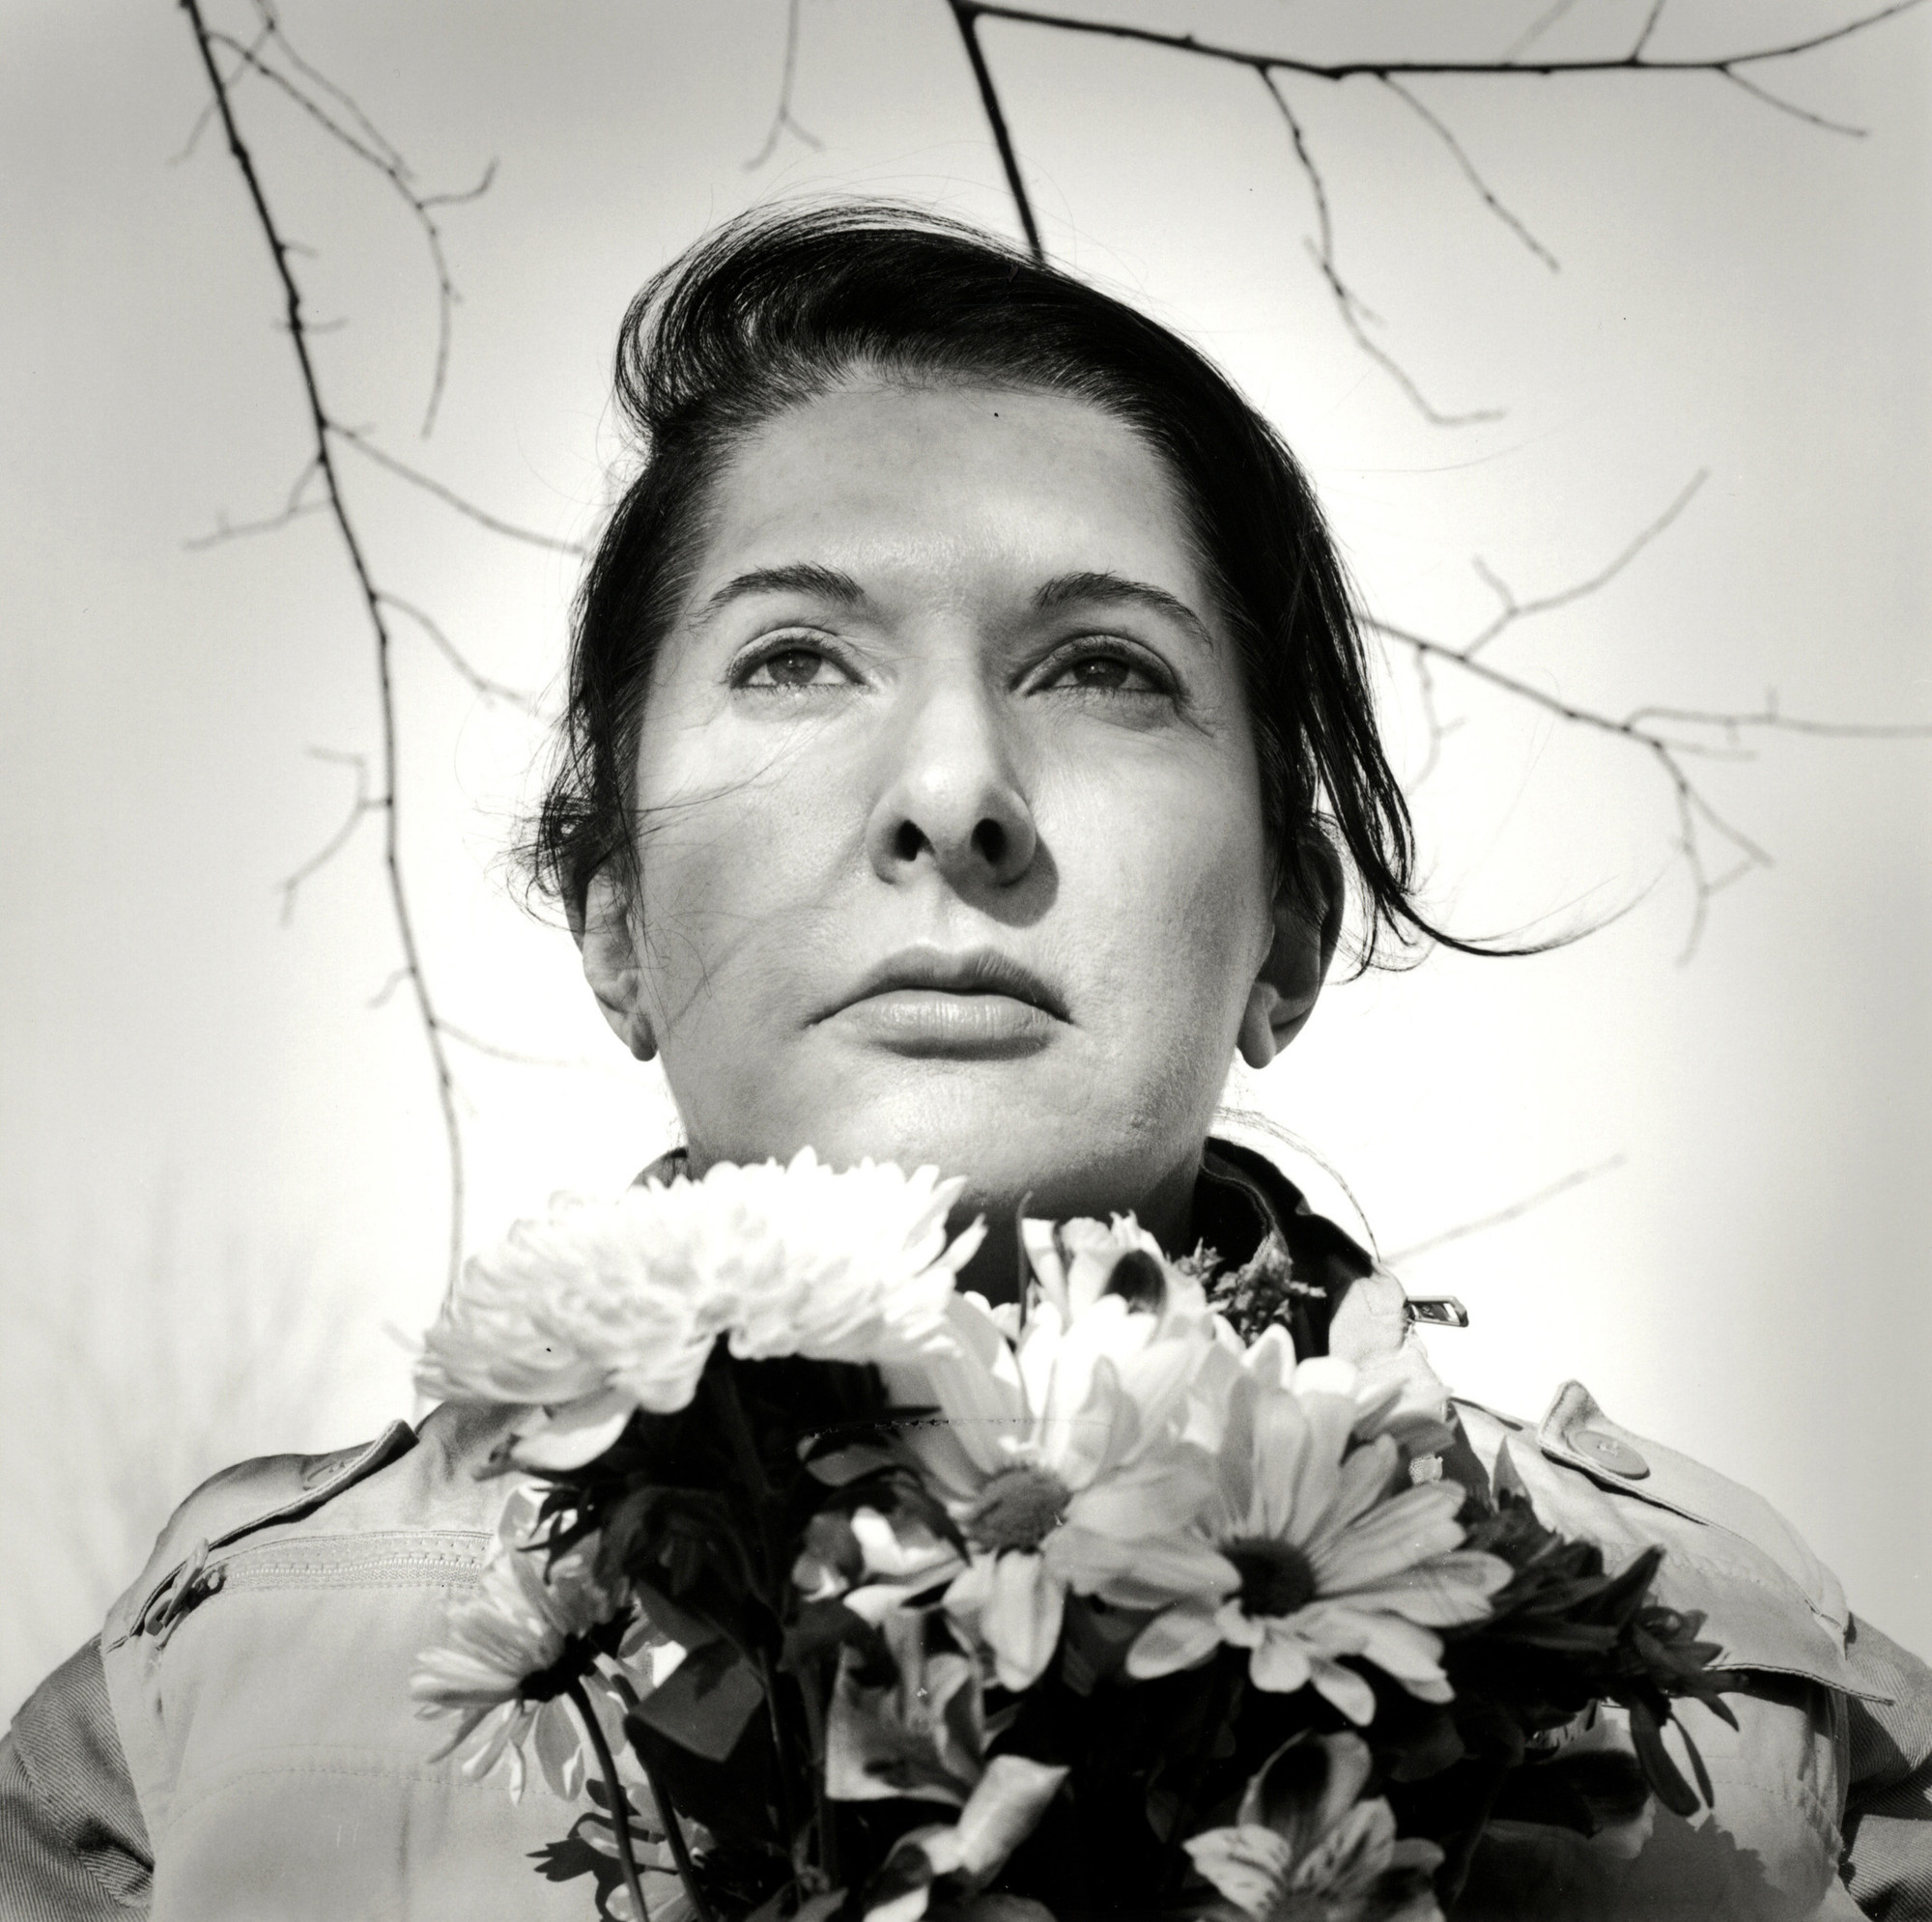 Marina abramovi the artist is present moma marina abramovi portrait with flowers 2009 black and white gelatin silver thecheapjerseys Image collections